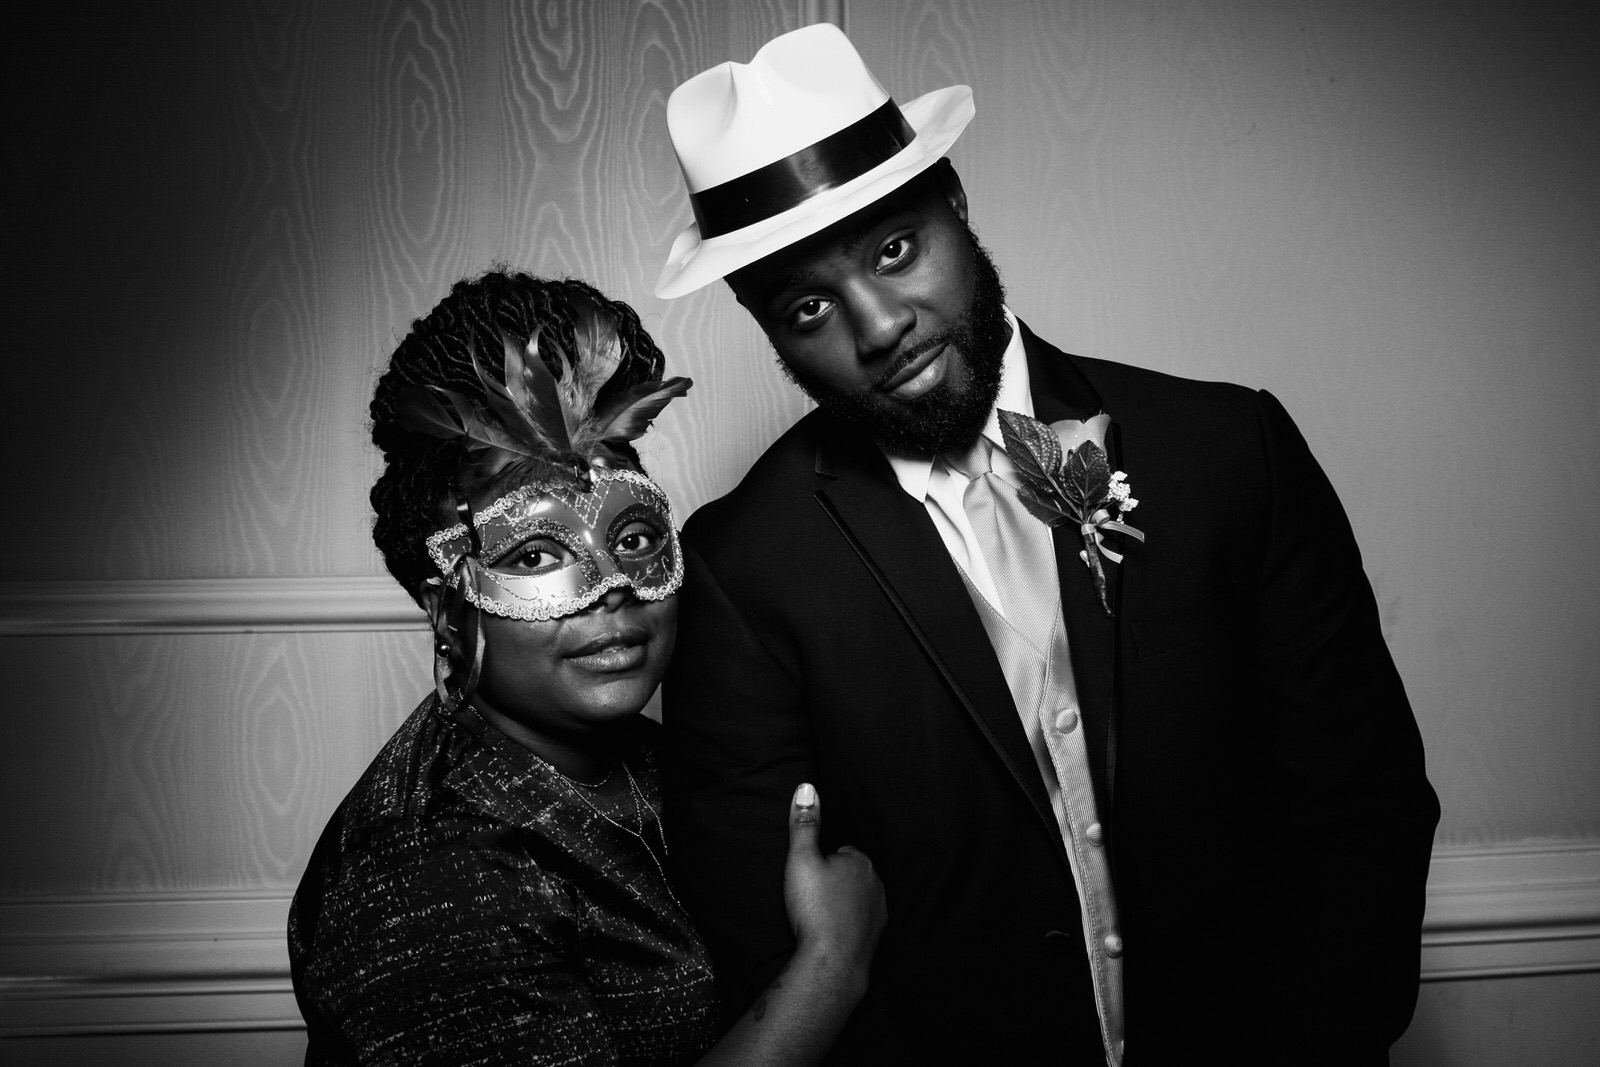 Ashley-Tyrone-Wedding-Photo-Booth-Presidential_Norristown-Wedding-5.jpg